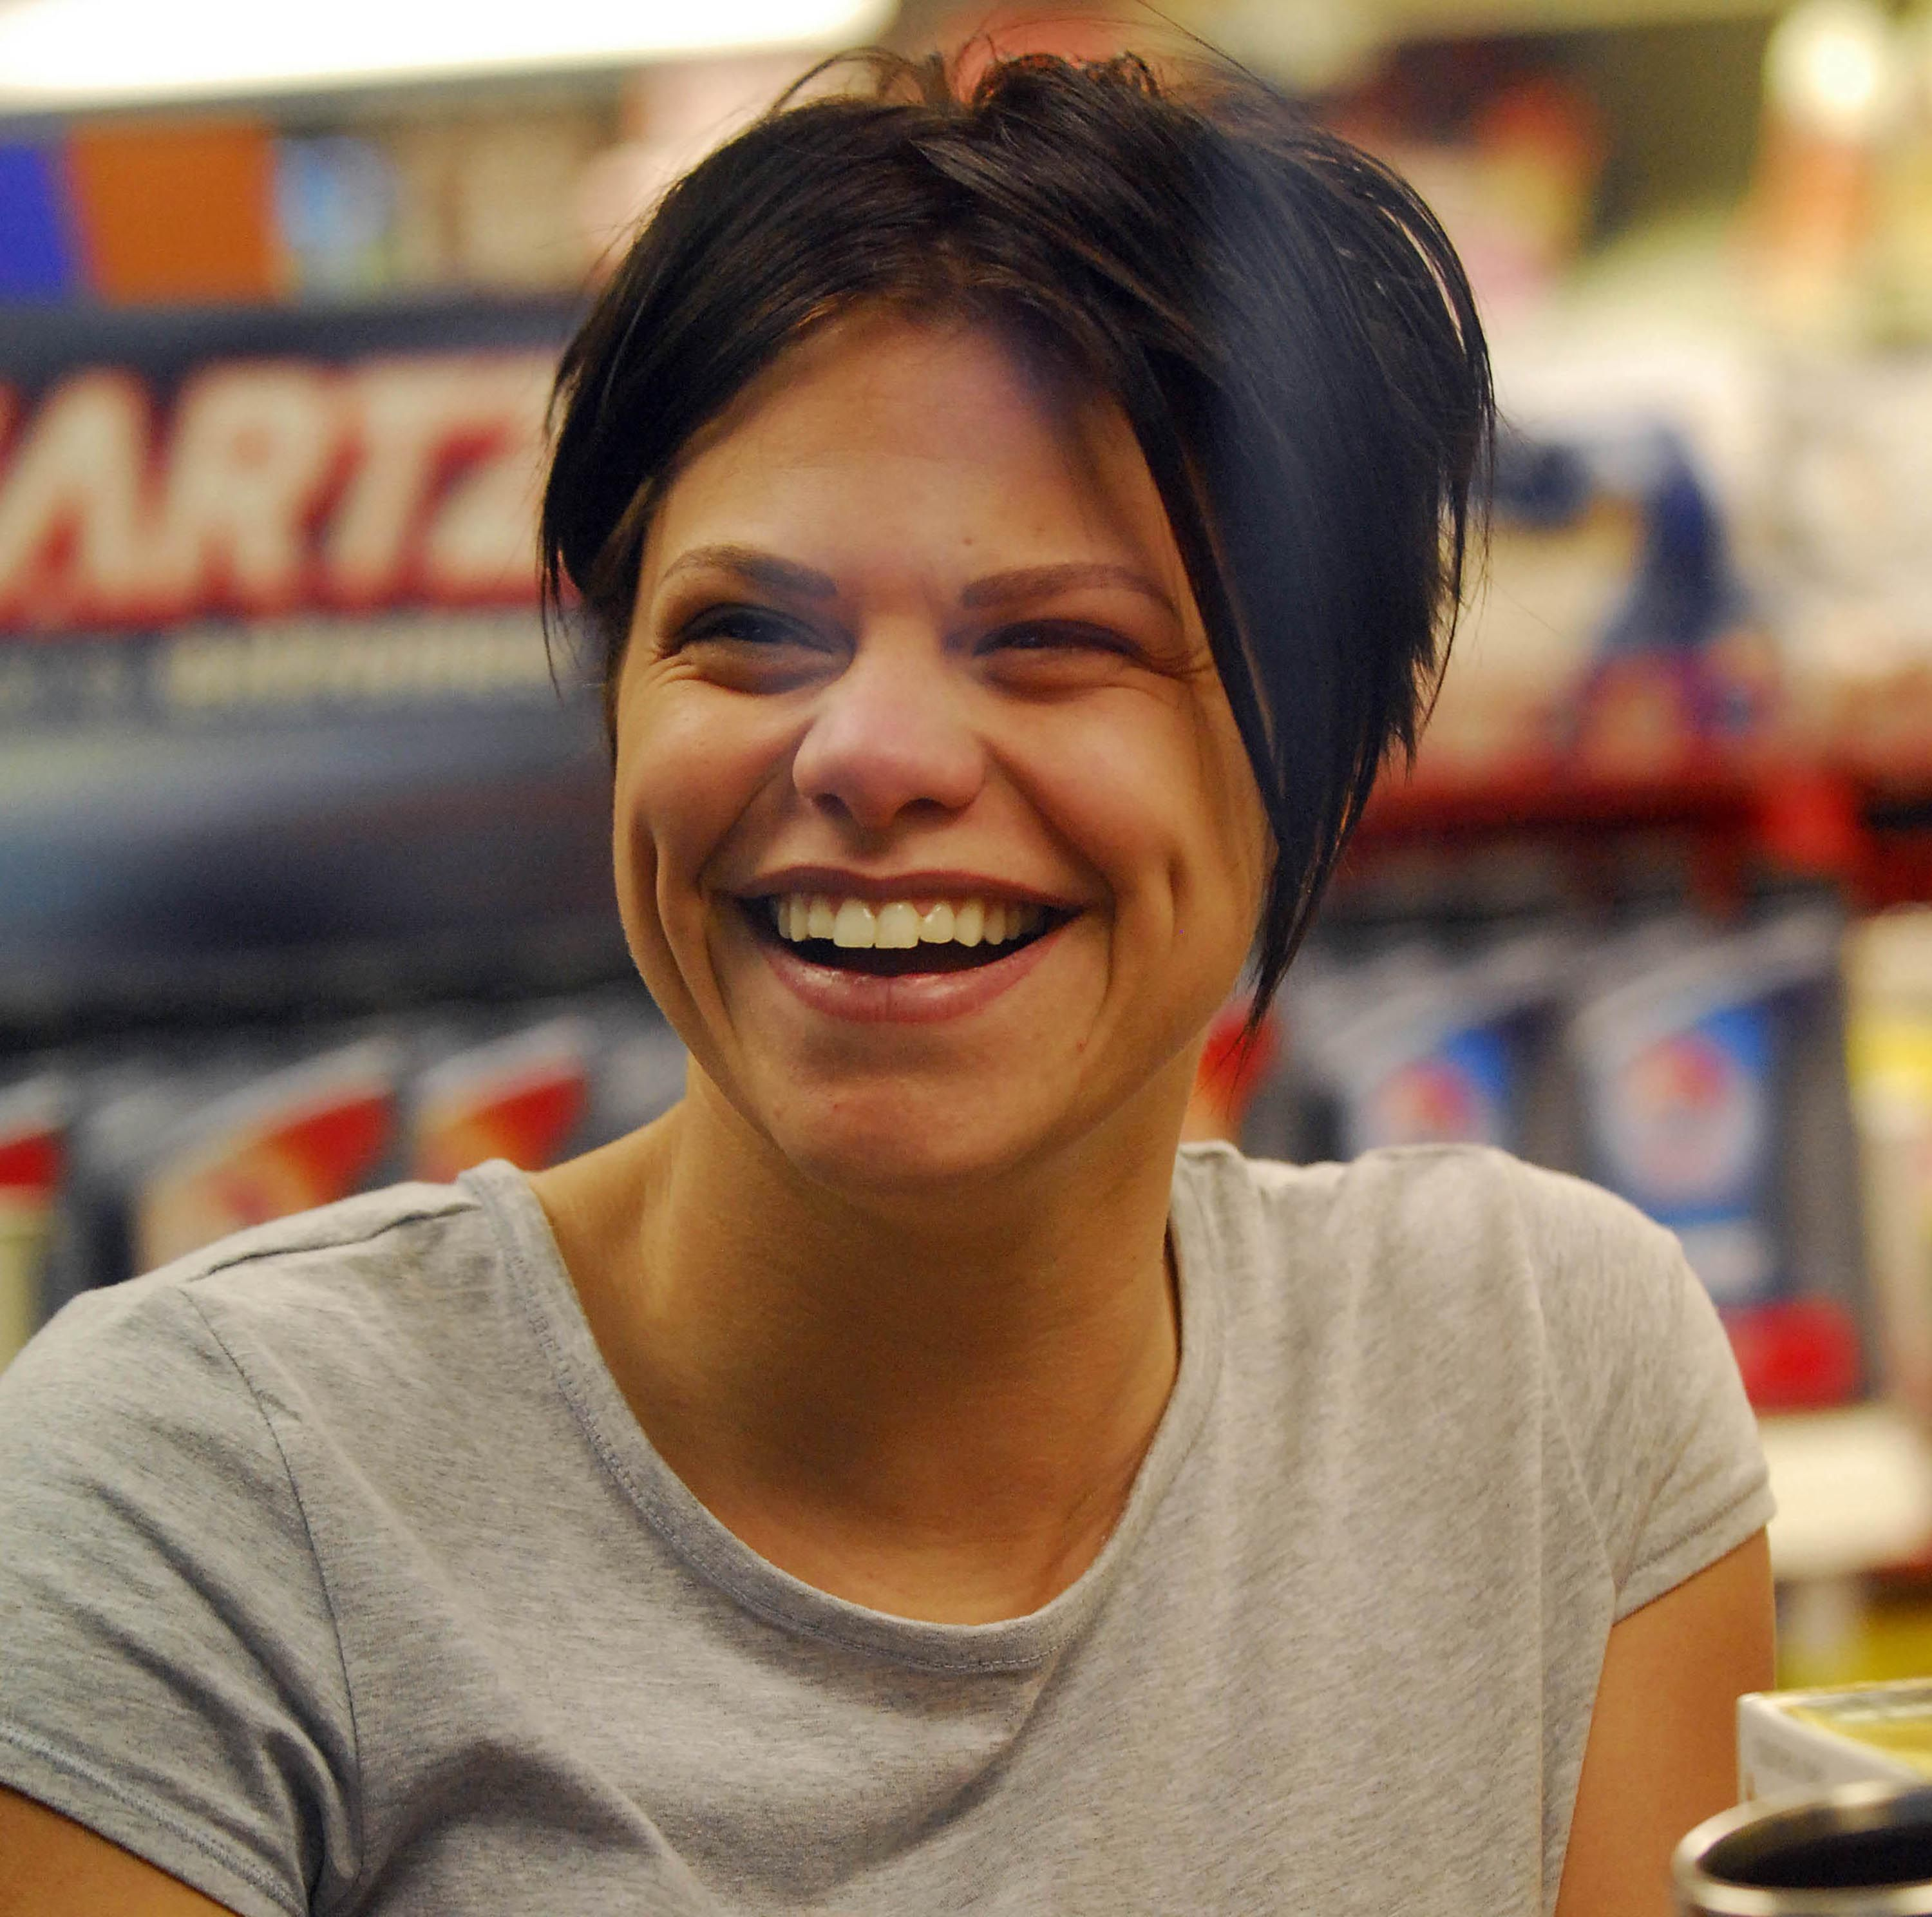 Jackiey Budden reveals why Jade Goody went on Big Brother